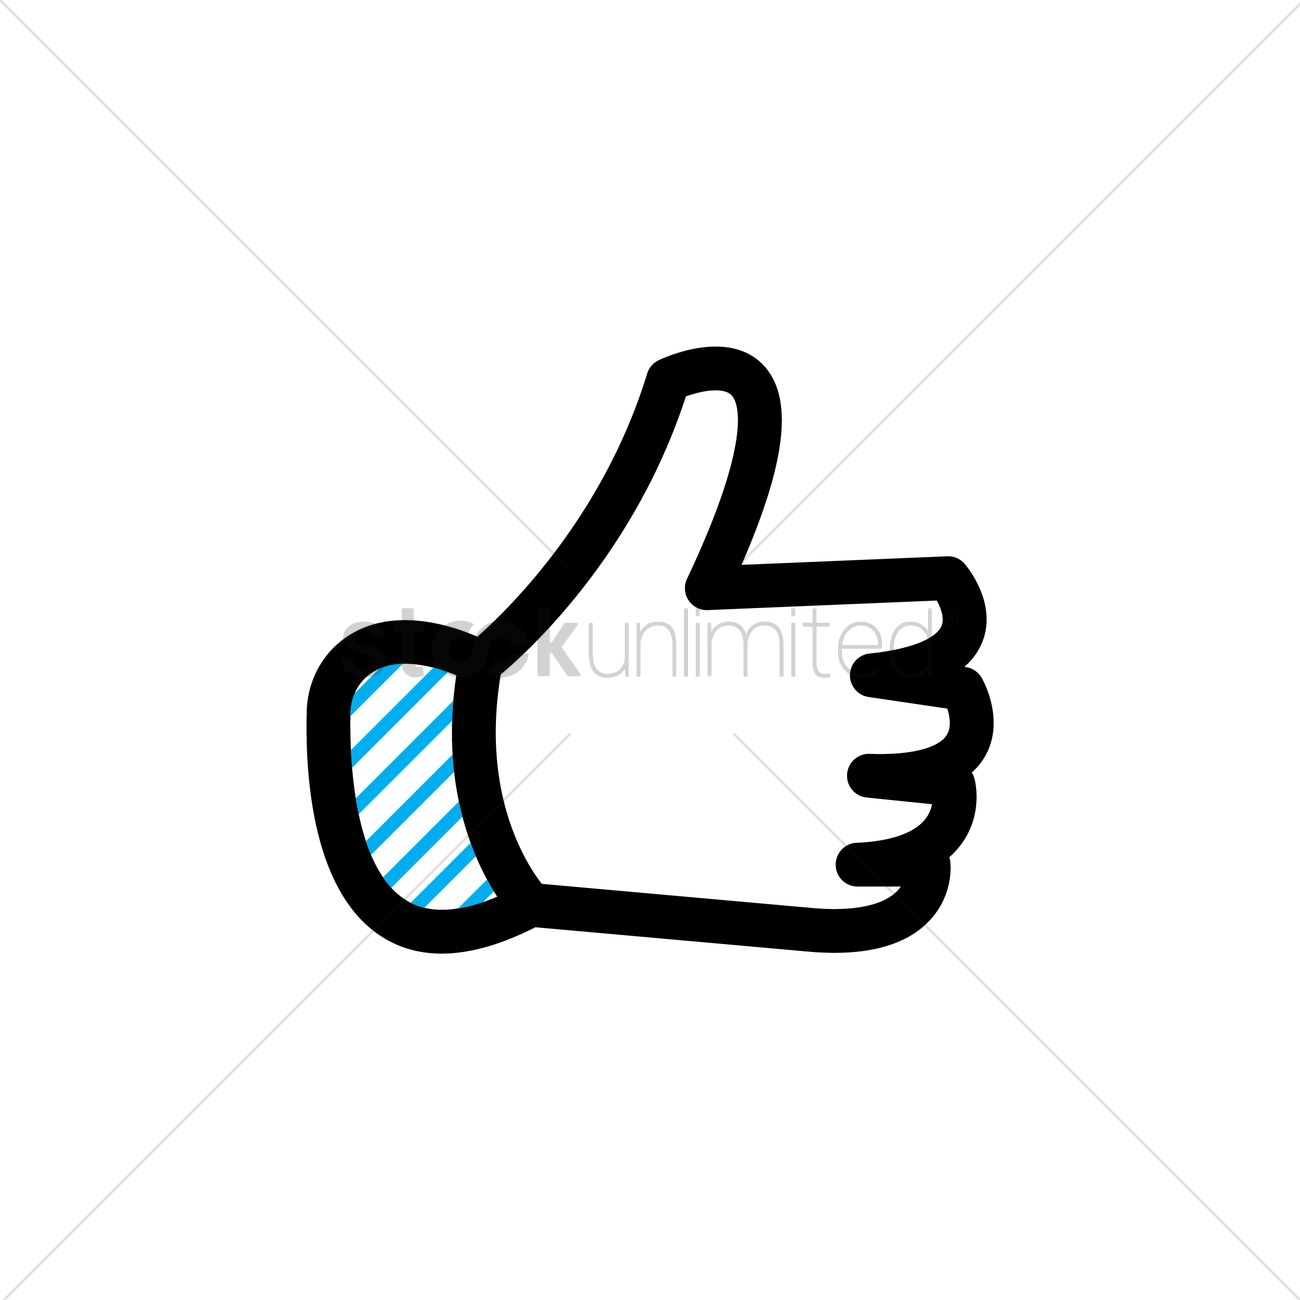 1300x1300 Free Thumbs Up Vector Image